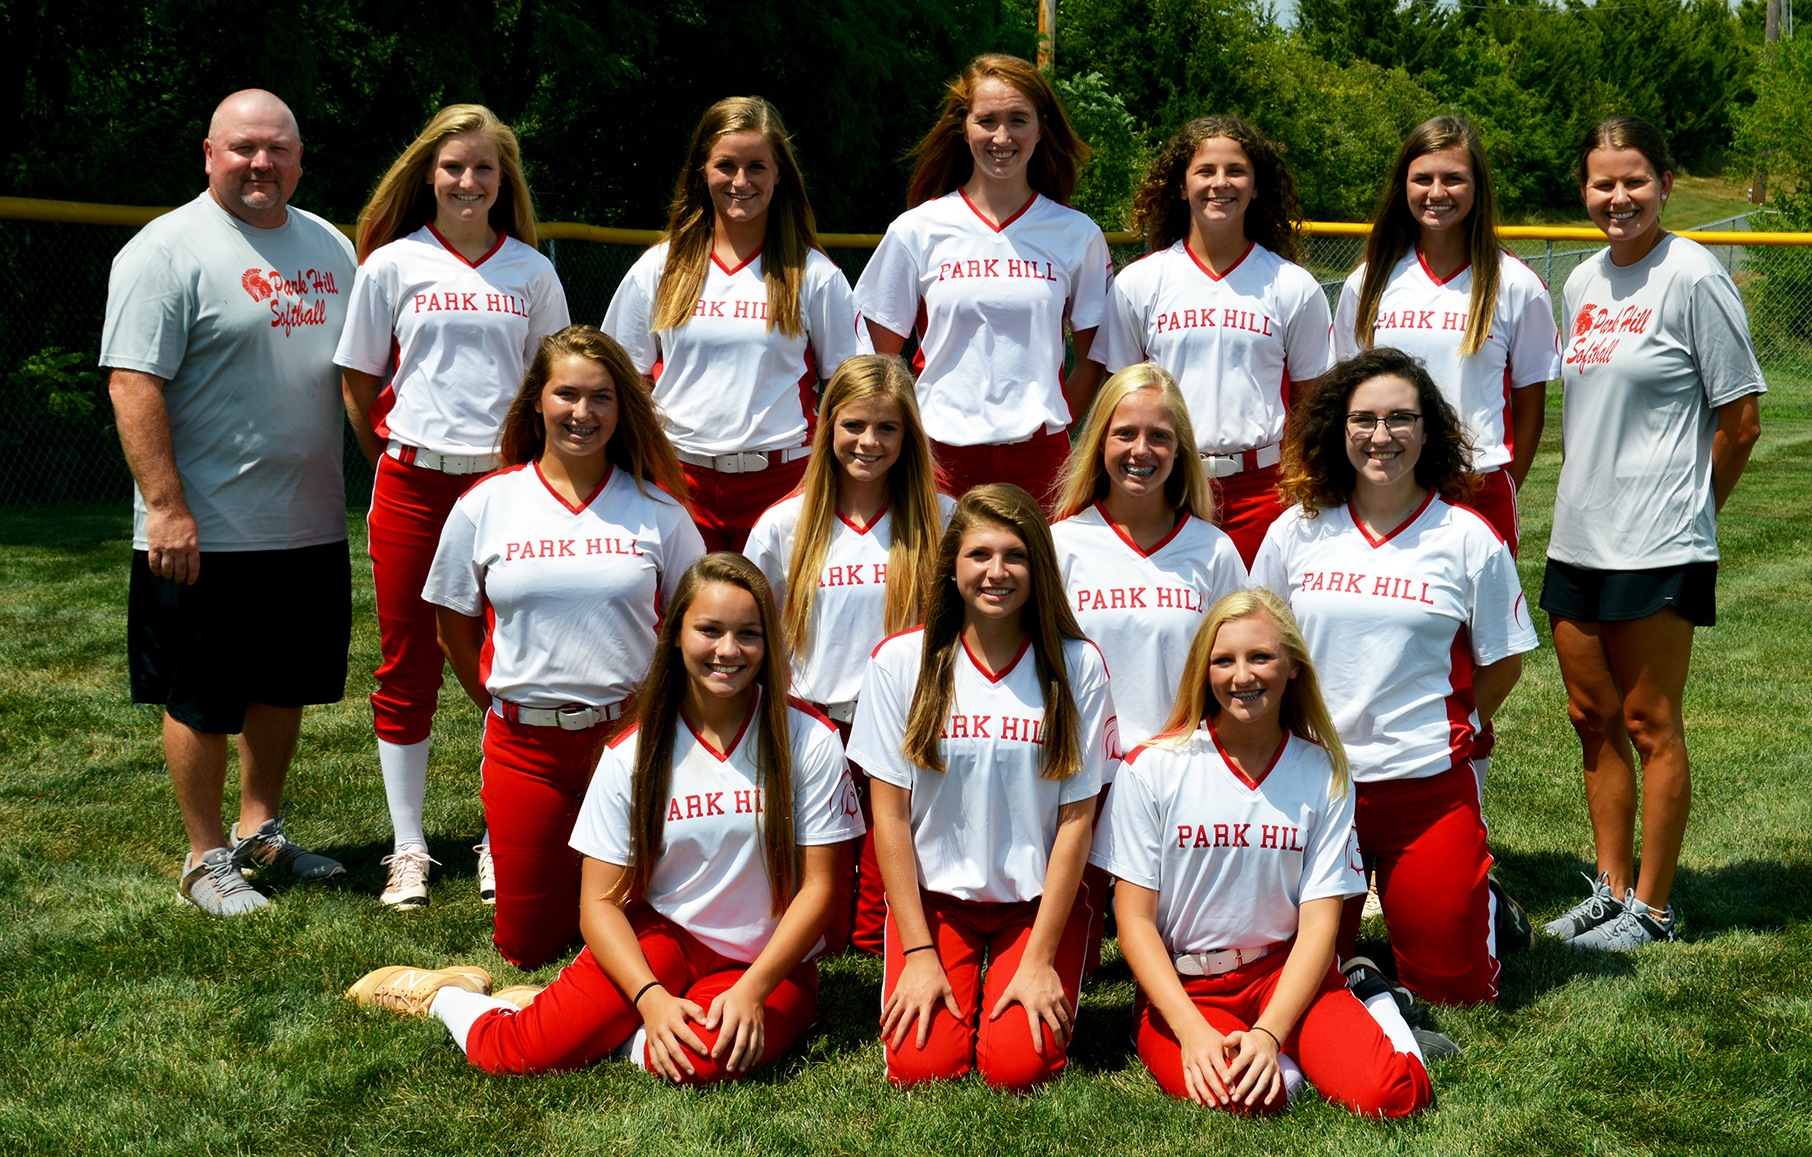 Front row, from left: Alexa Lashbrook, Josie Heckman and Miranda LaMunyon. Second row, from left: Isabella Anderson, Kirsten Waldon, Jessie Binckley and Sarah Werner. Back row, from left: Coach Qualls, Carley Ramsey, Kaelyn Day, Addison Devers, Kali Day, Isabella Wahlert and coach Mosier. Not pictured: Peyton Morehouse, Gracen Santoyo.